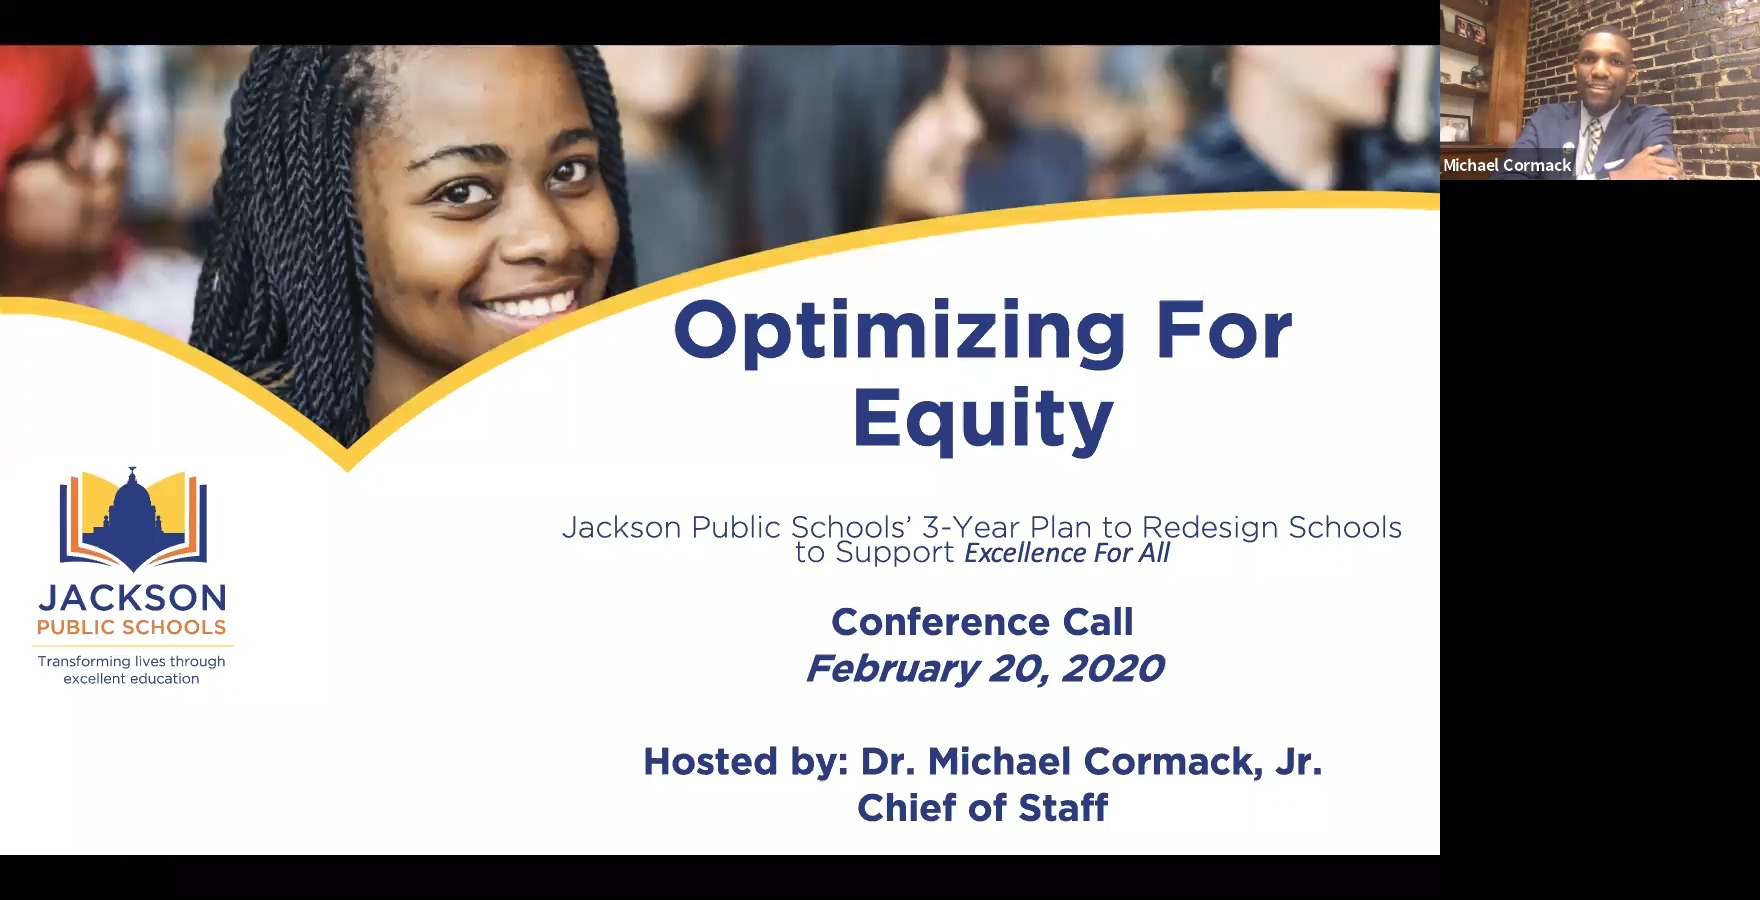 Optimizing for Equity Employee Conference Call